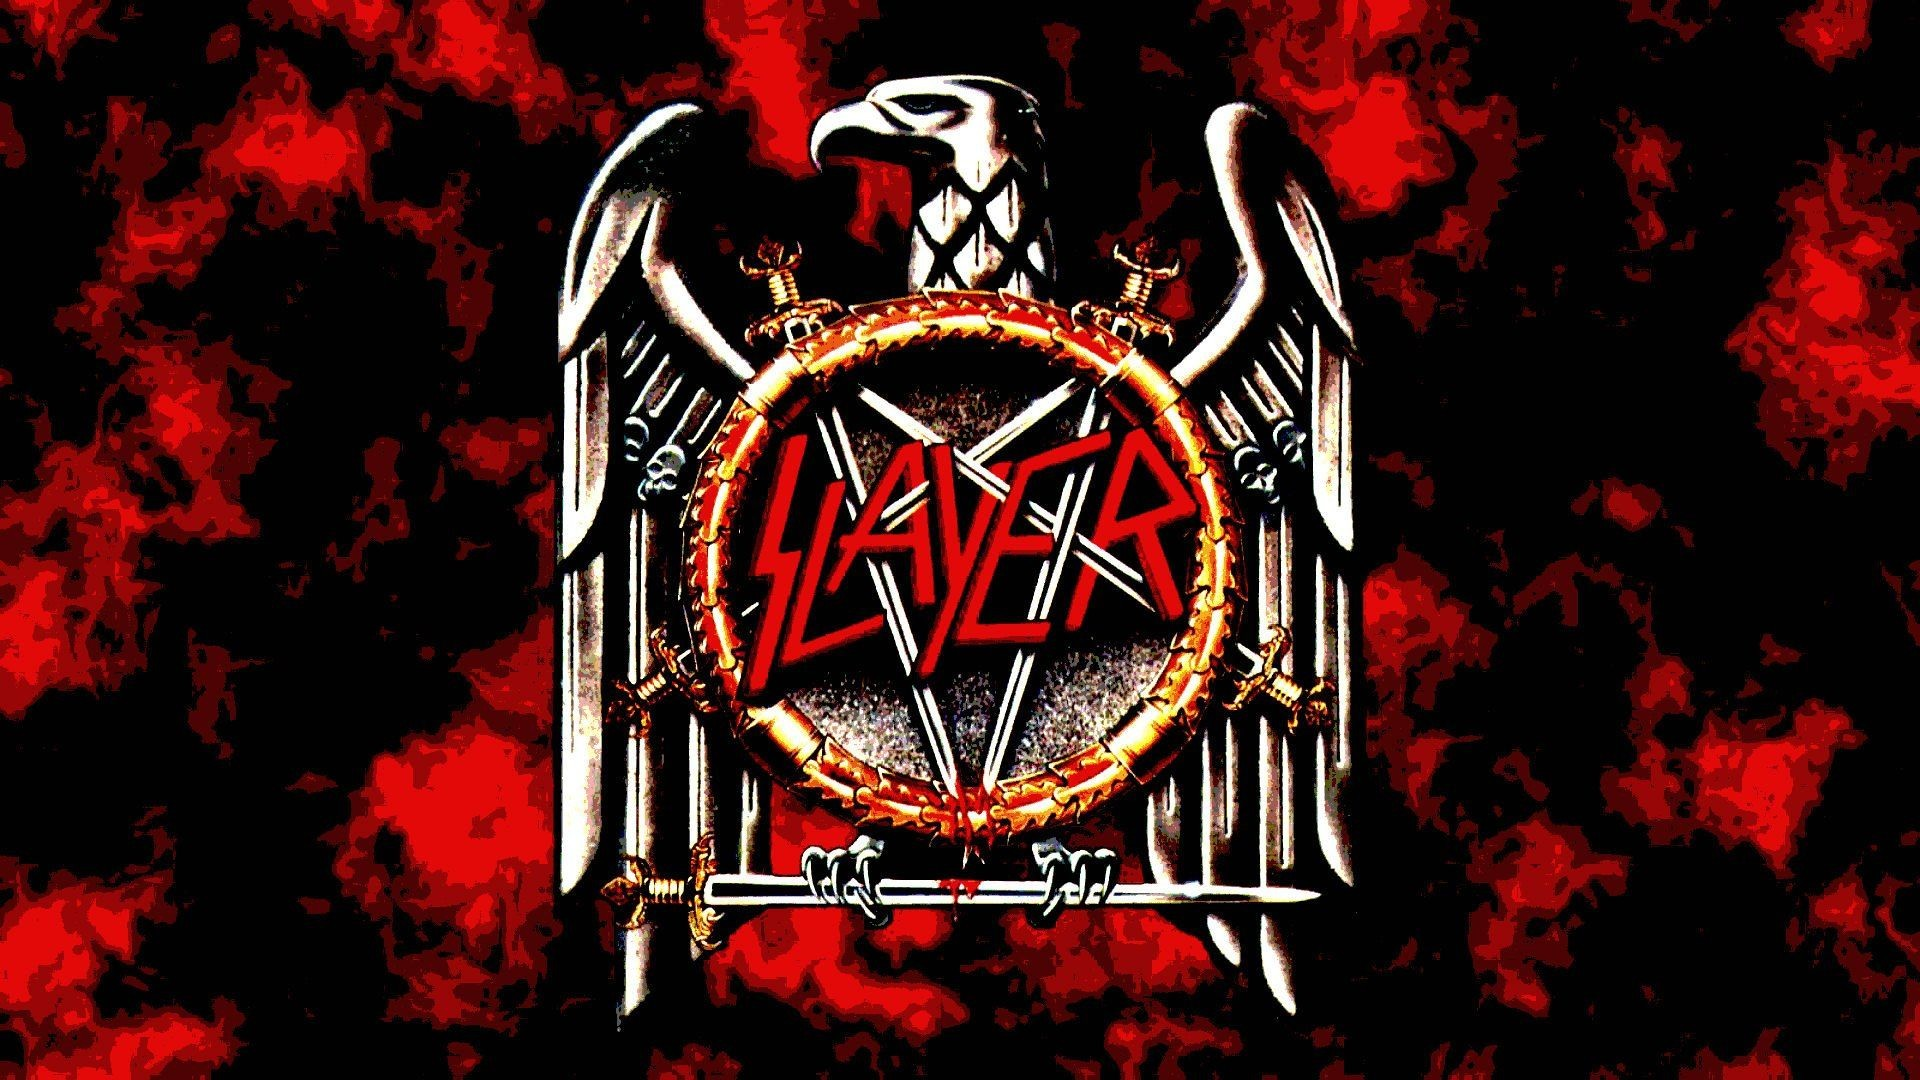 1920x1080 Slayer Full HD Quality Backgrounds, Slayer Wallpapers - 36+ .